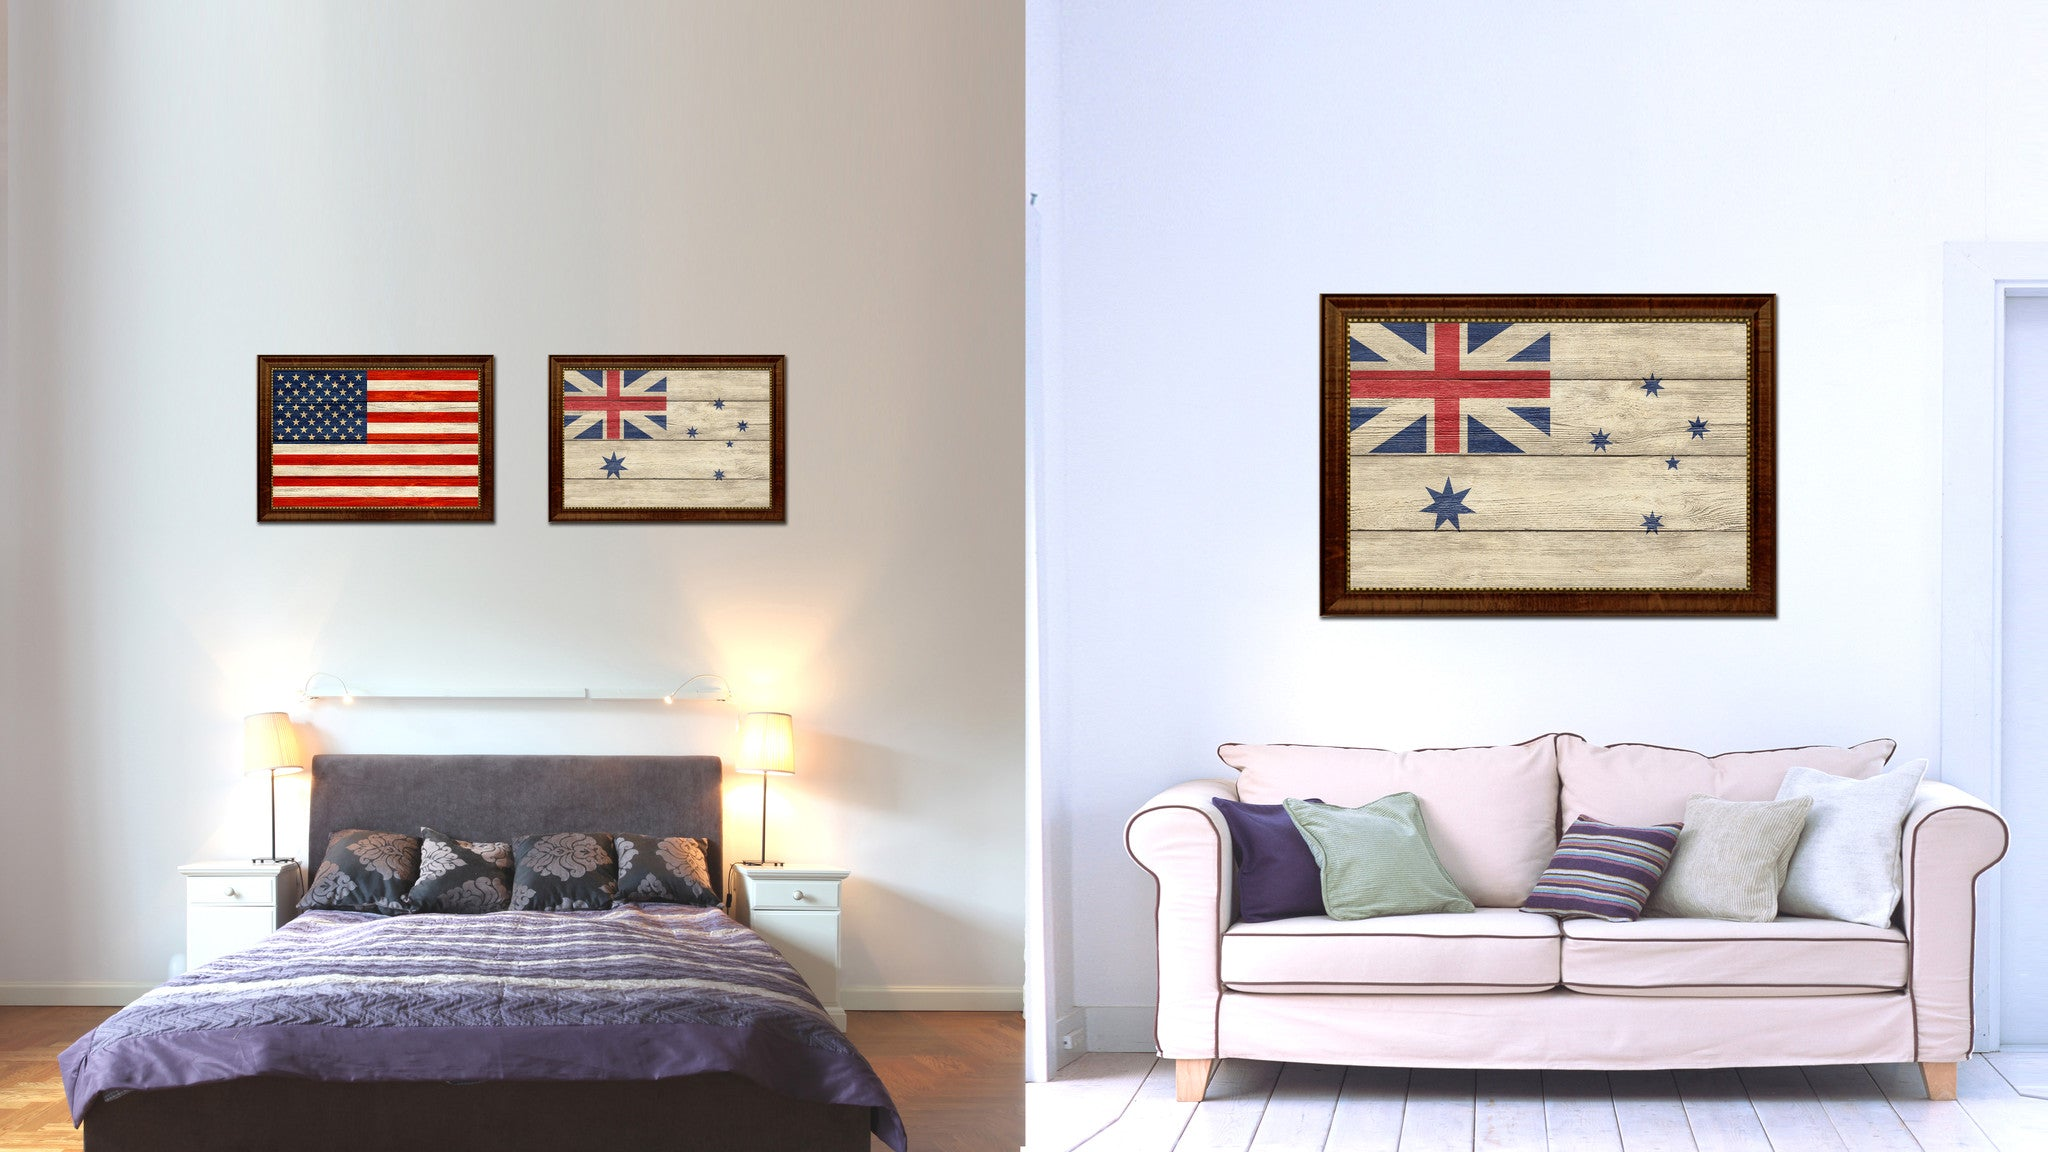 Australian White Ensign City Australia Country Texture Flag Canvas Print Brown Picture Frame